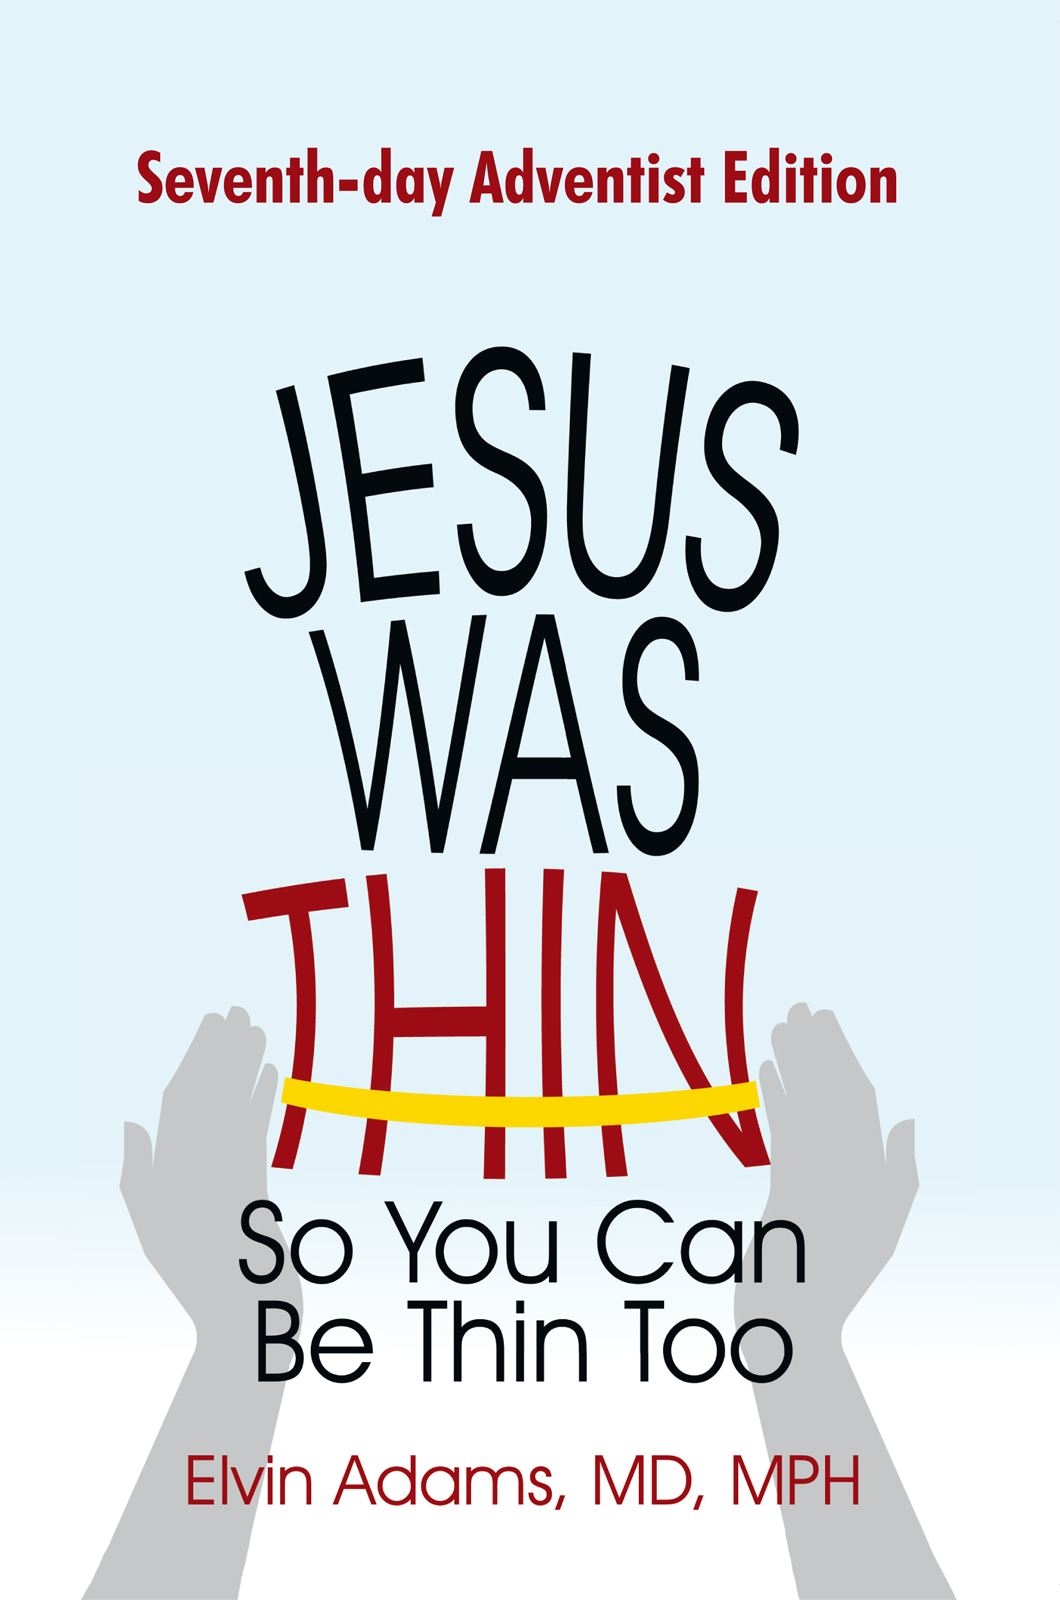 Jesus Was Thin So You Can Be Thin Too By: Elvin Adams, MD, MPH